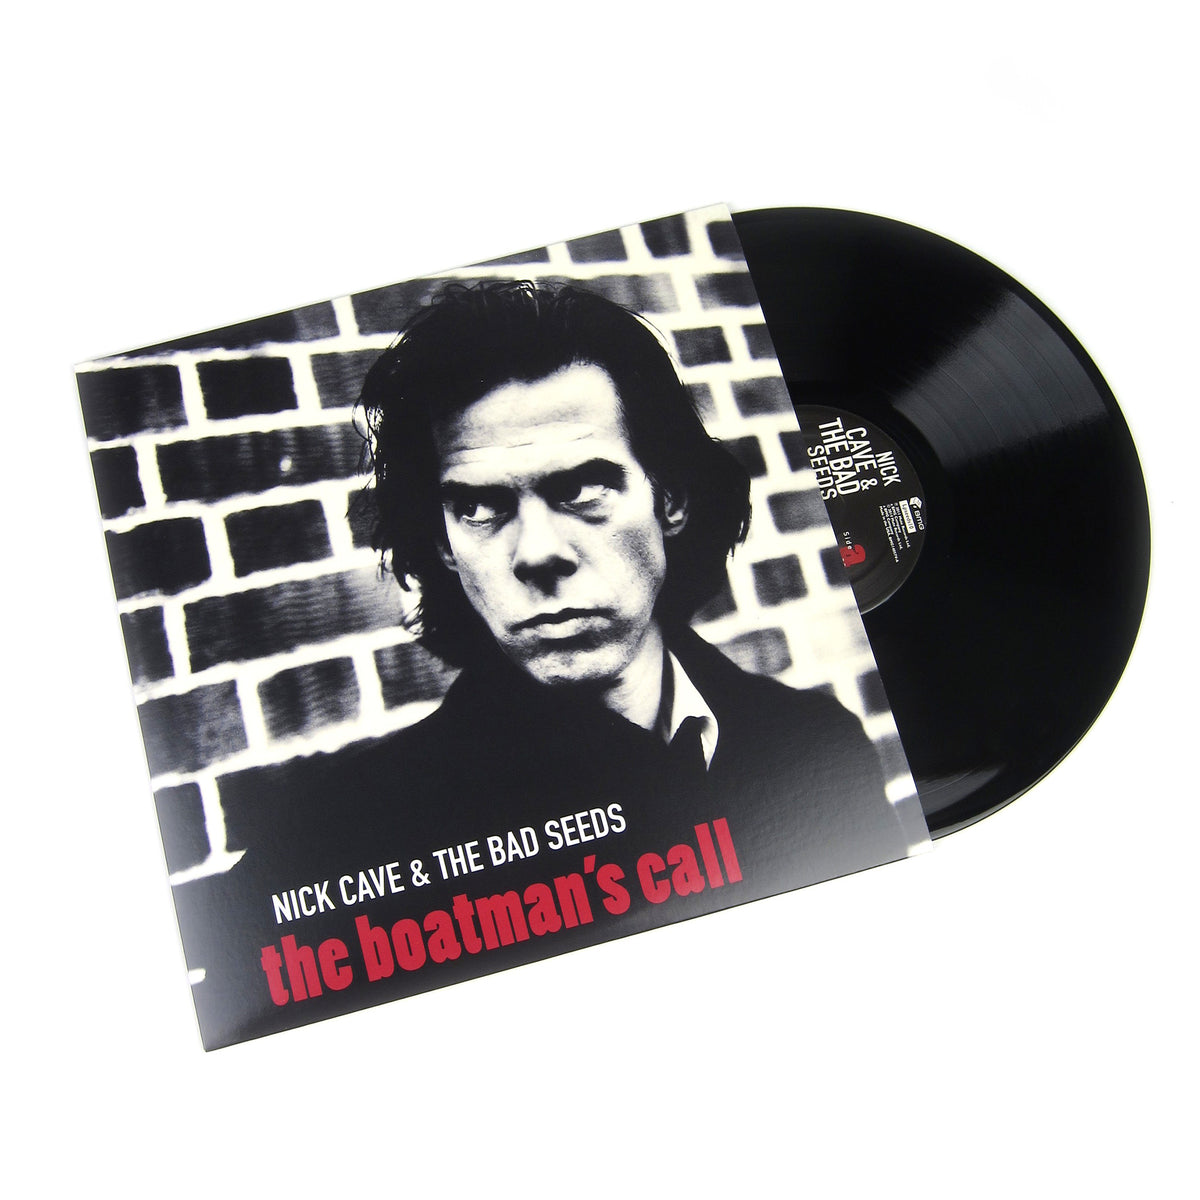 Nick Cave & The Bad Seeds: The Boatman's Call (180g) Vinyl LP